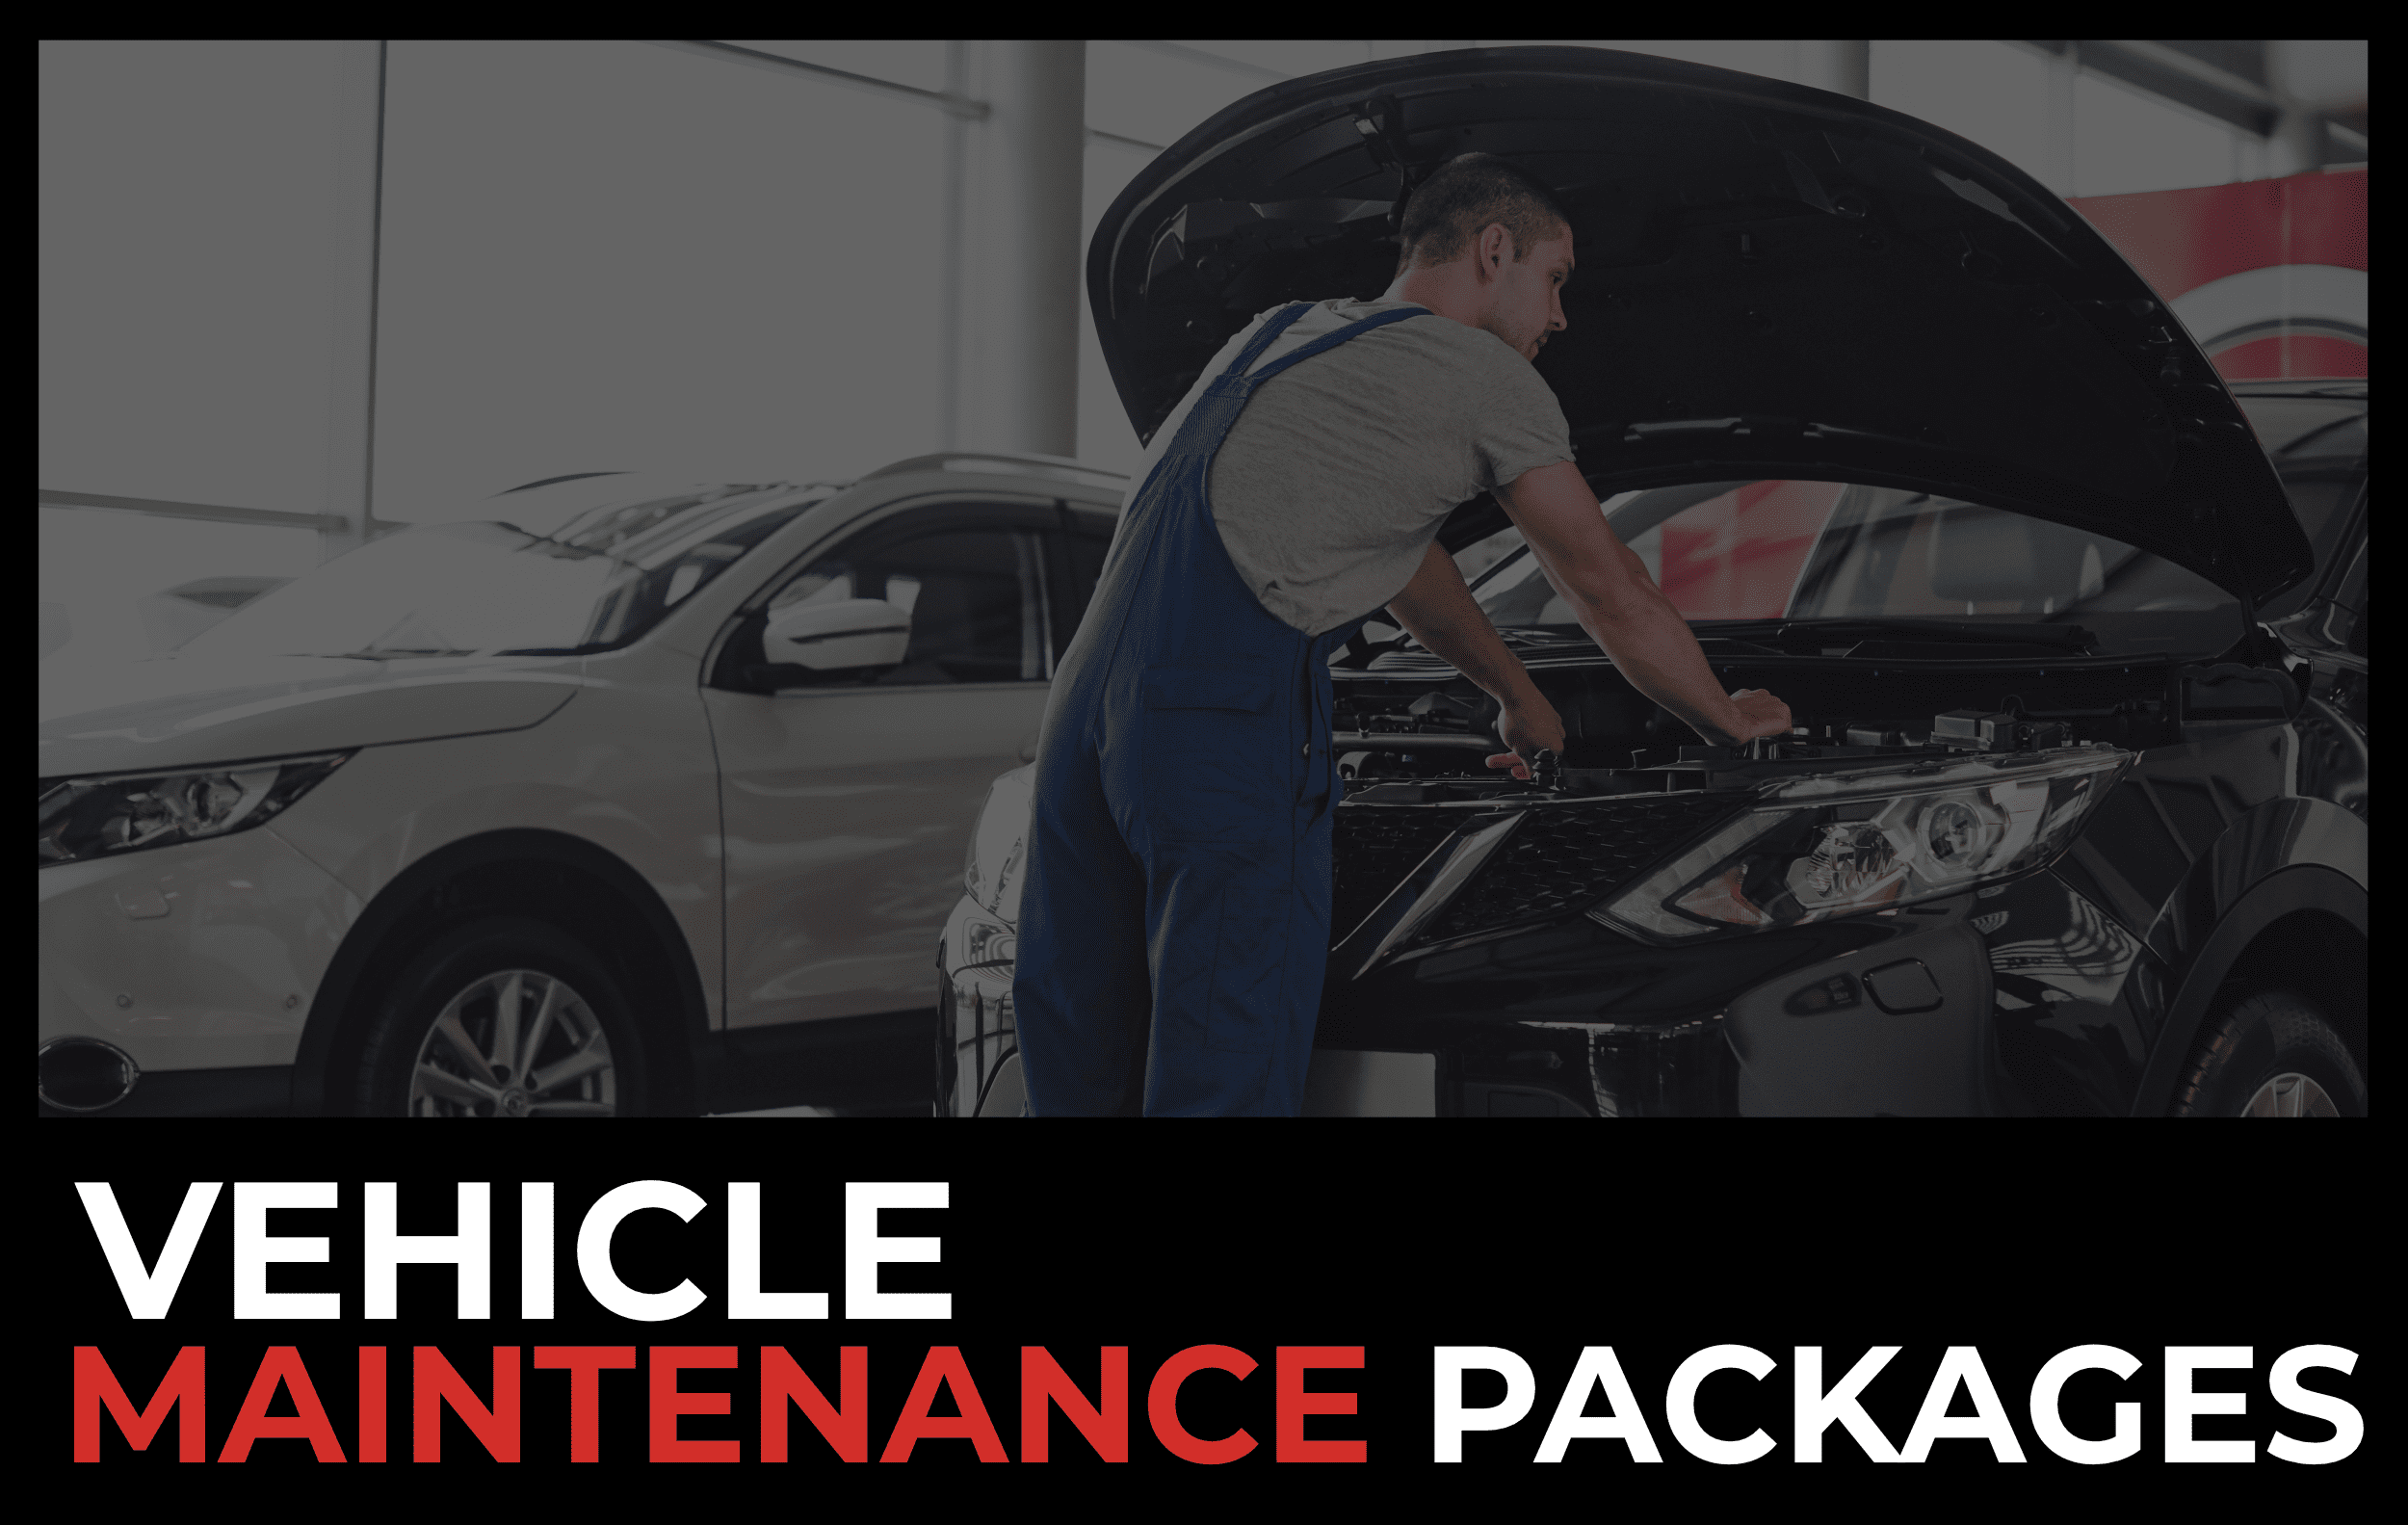 Vehicle Maintenance Packages